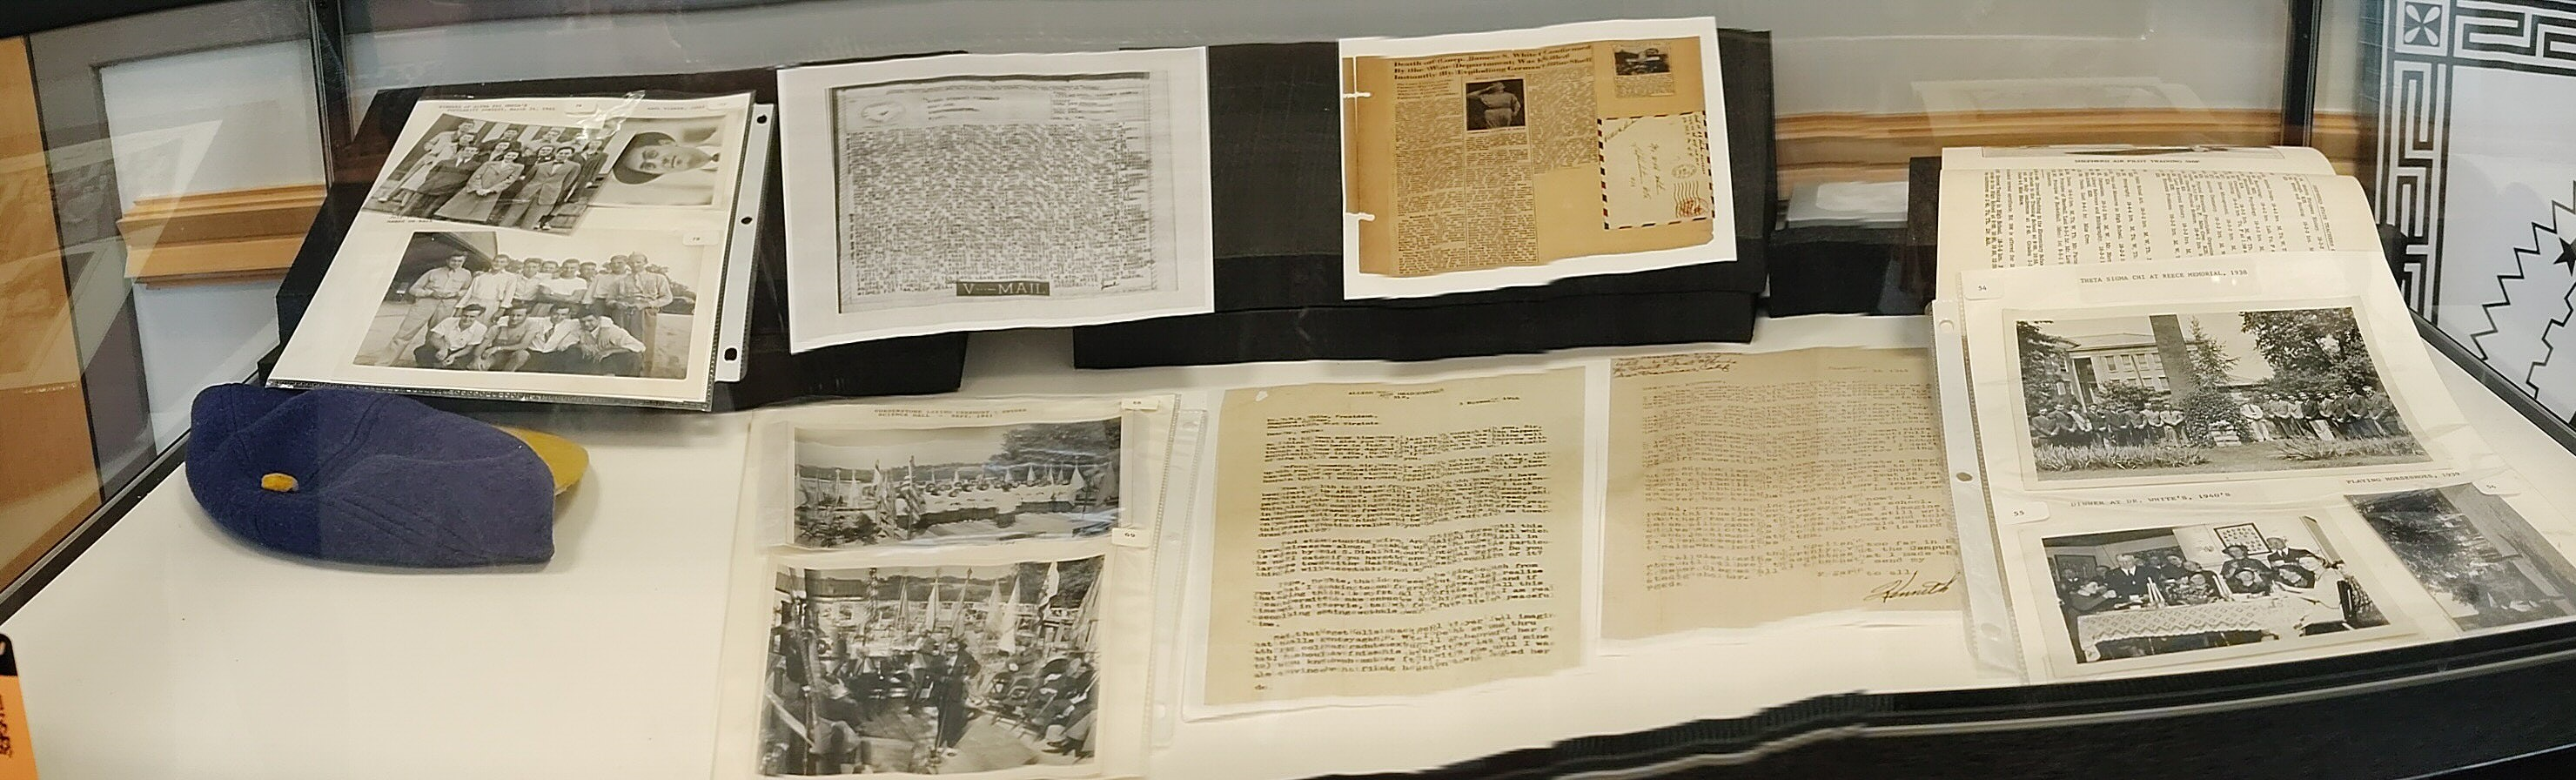 Display in Archive Reading Room showing photos and letters from Shepherd College students and alumni duringWWII